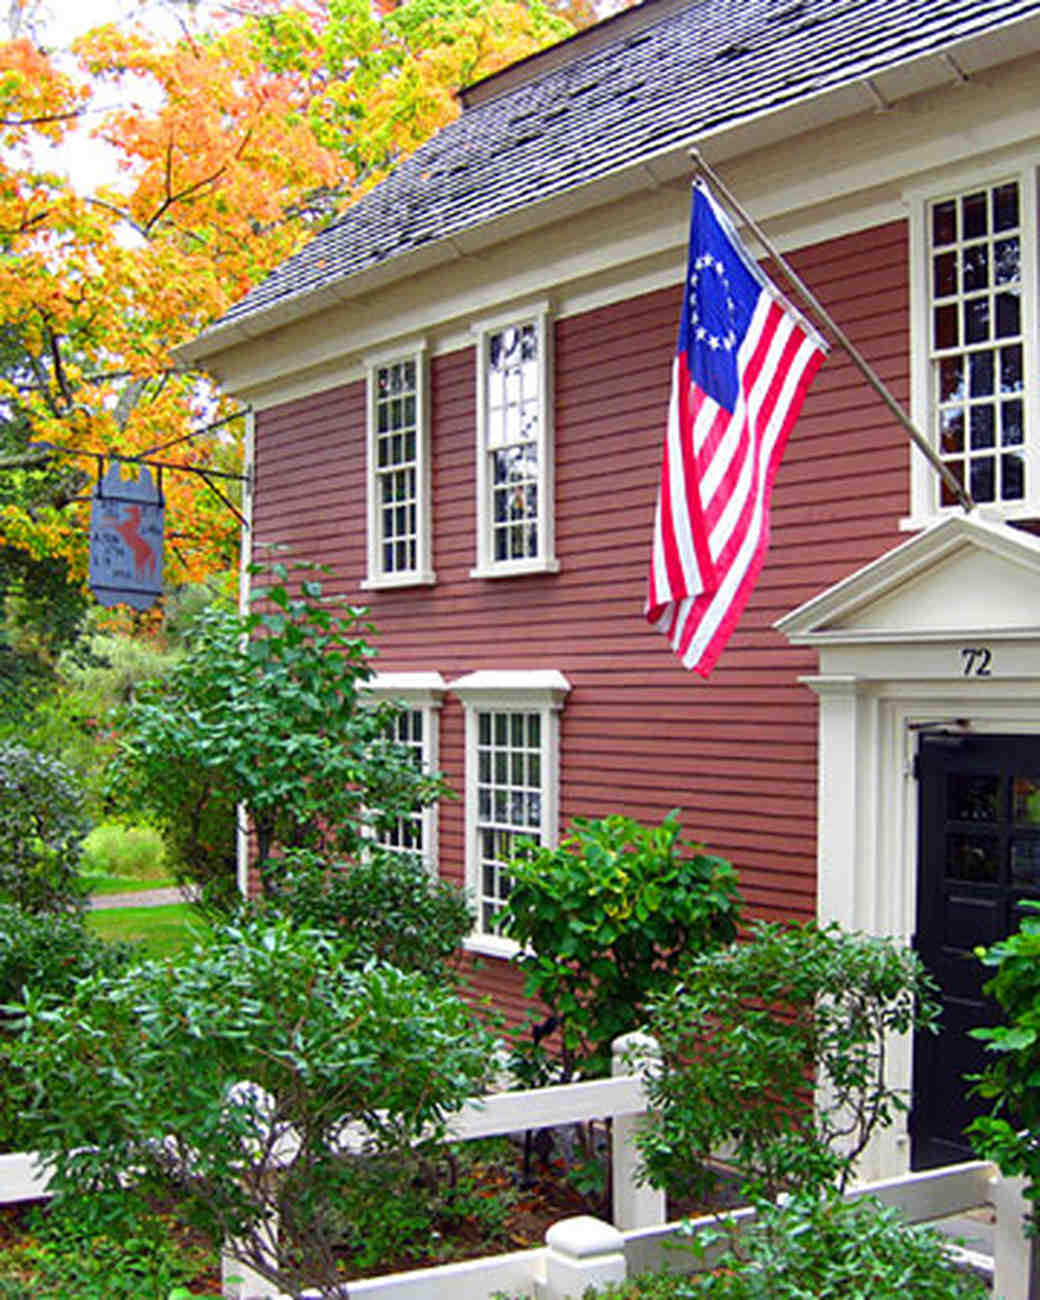 msw_sip10_massachusetts_wayside_inn.jpg